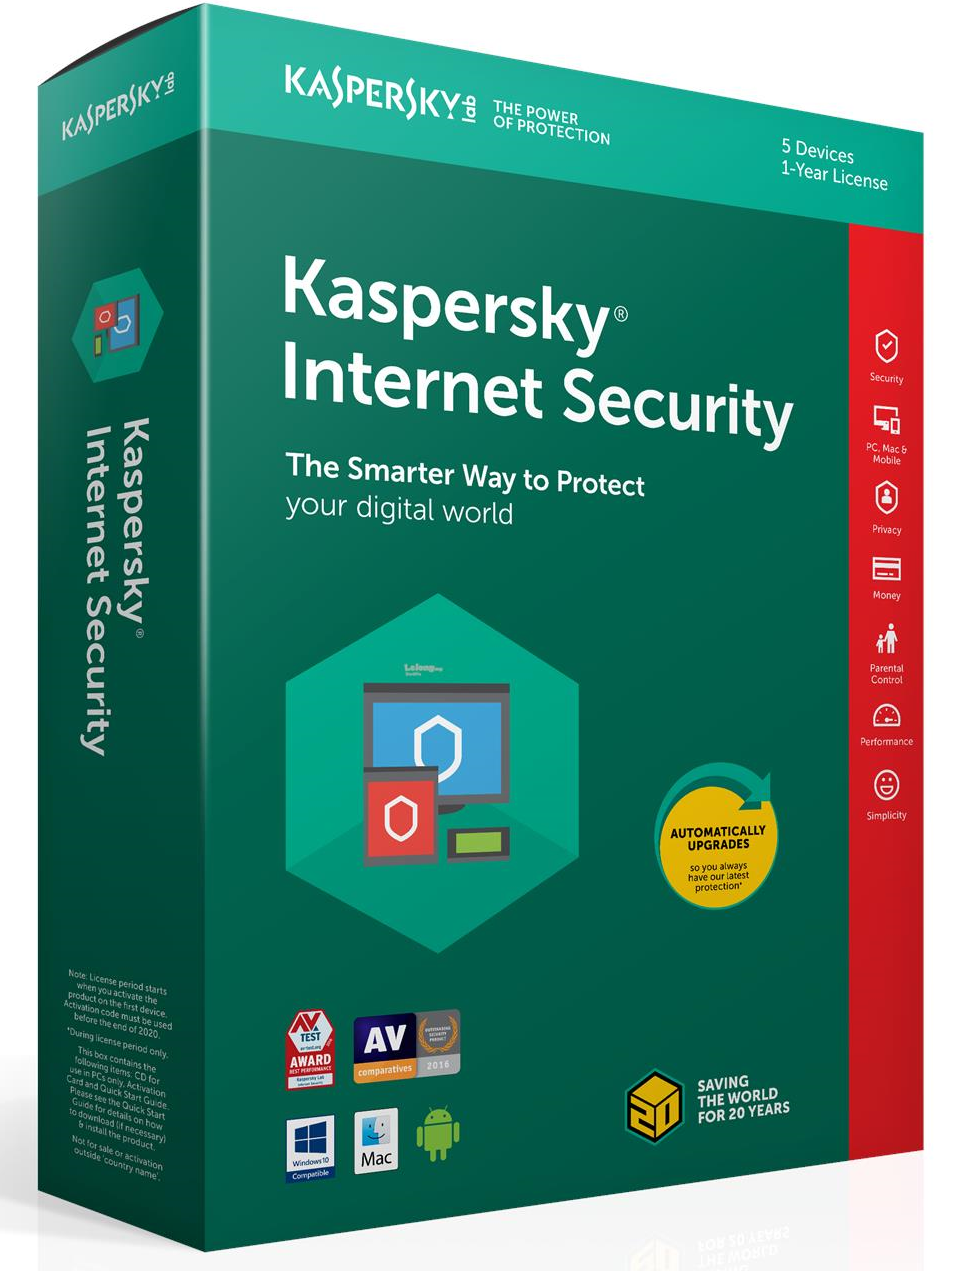 Kaspersky Internet Security 2019 - 1 år - 5 enheder - Kaspersky Internet Security 2019 - 1 år - 5 enheder Version : Kaspersky Internet Security 2019 Produkttype : Sikkerhedssoftware Produktserie : Kaspersky Producent : Kaspersky Lab Software : Kaspersky Internet Security 2019 Sprog : Dansk, Engelsk (eller an